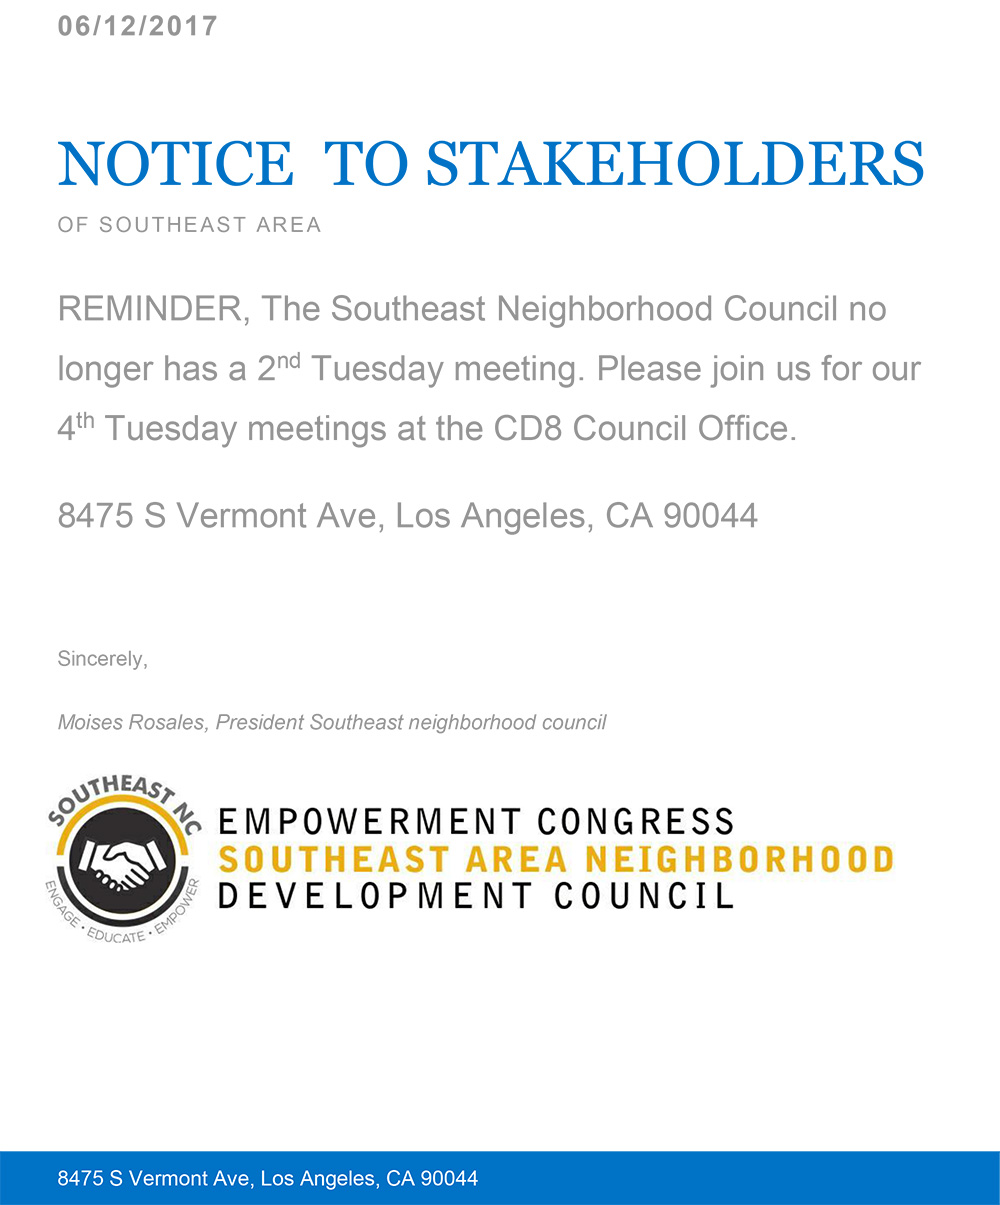 South East Area Neighborhood Council